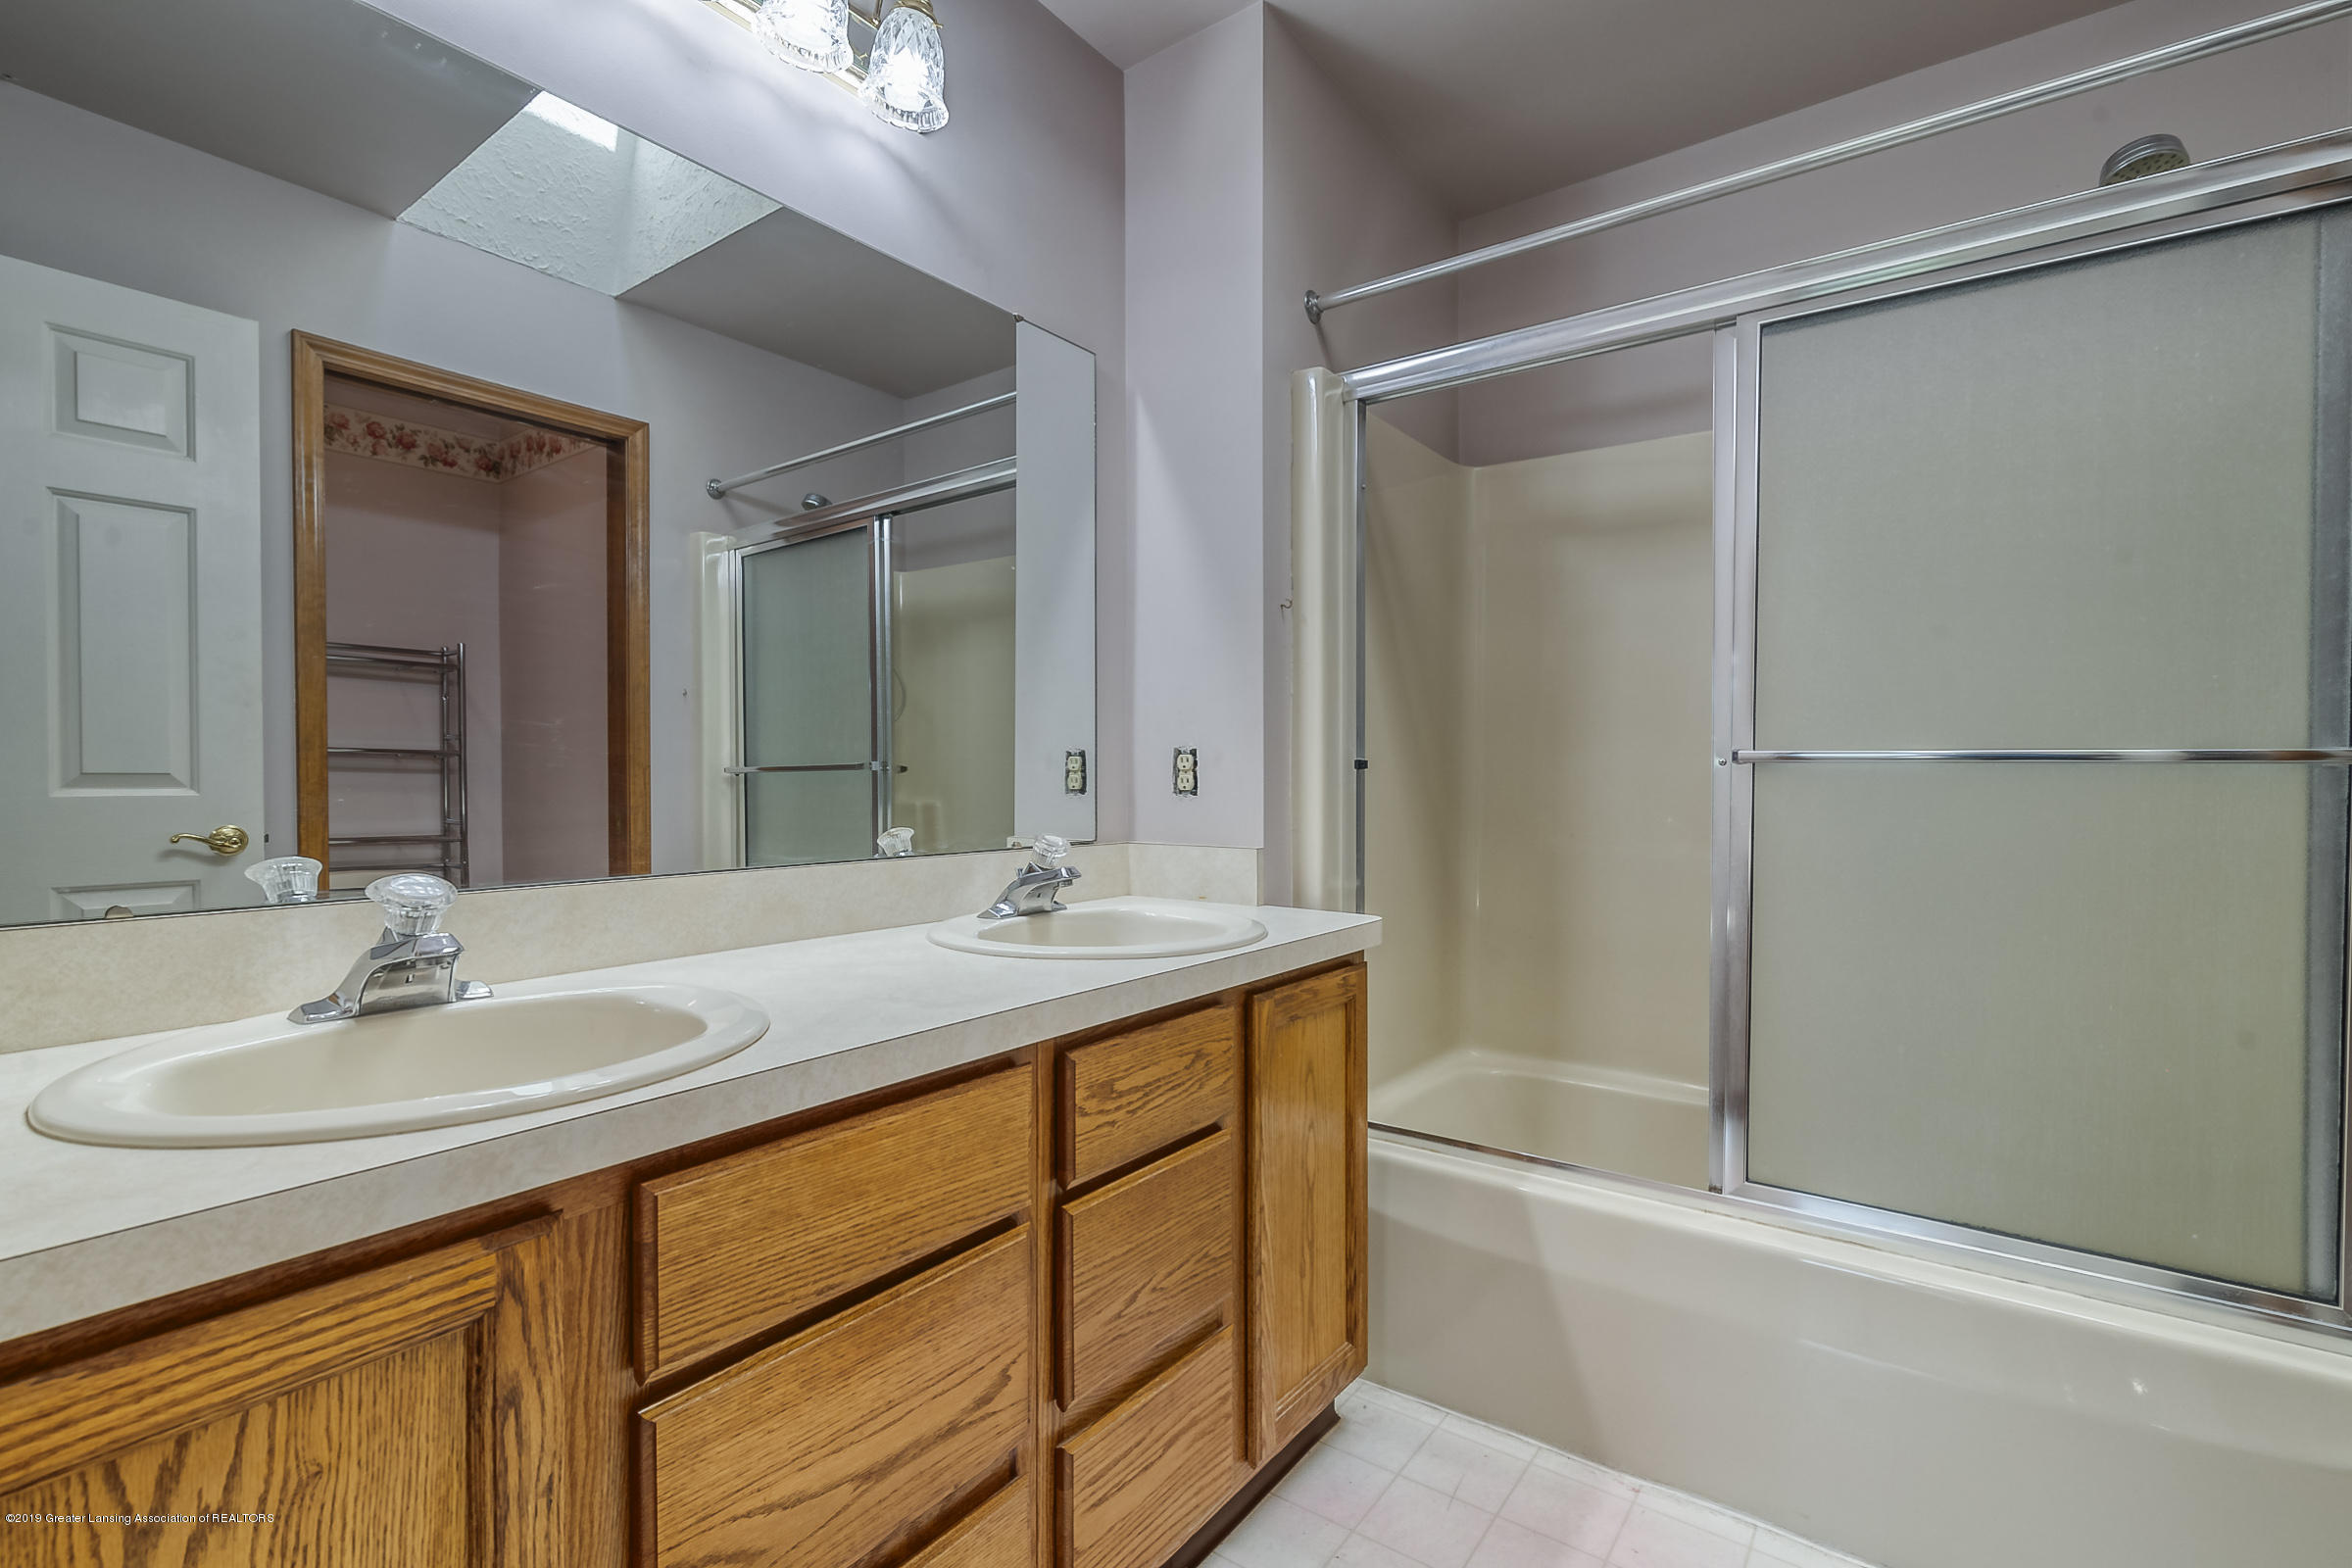 2343 Chisholm Ct - MASTER BATHROOM - 29